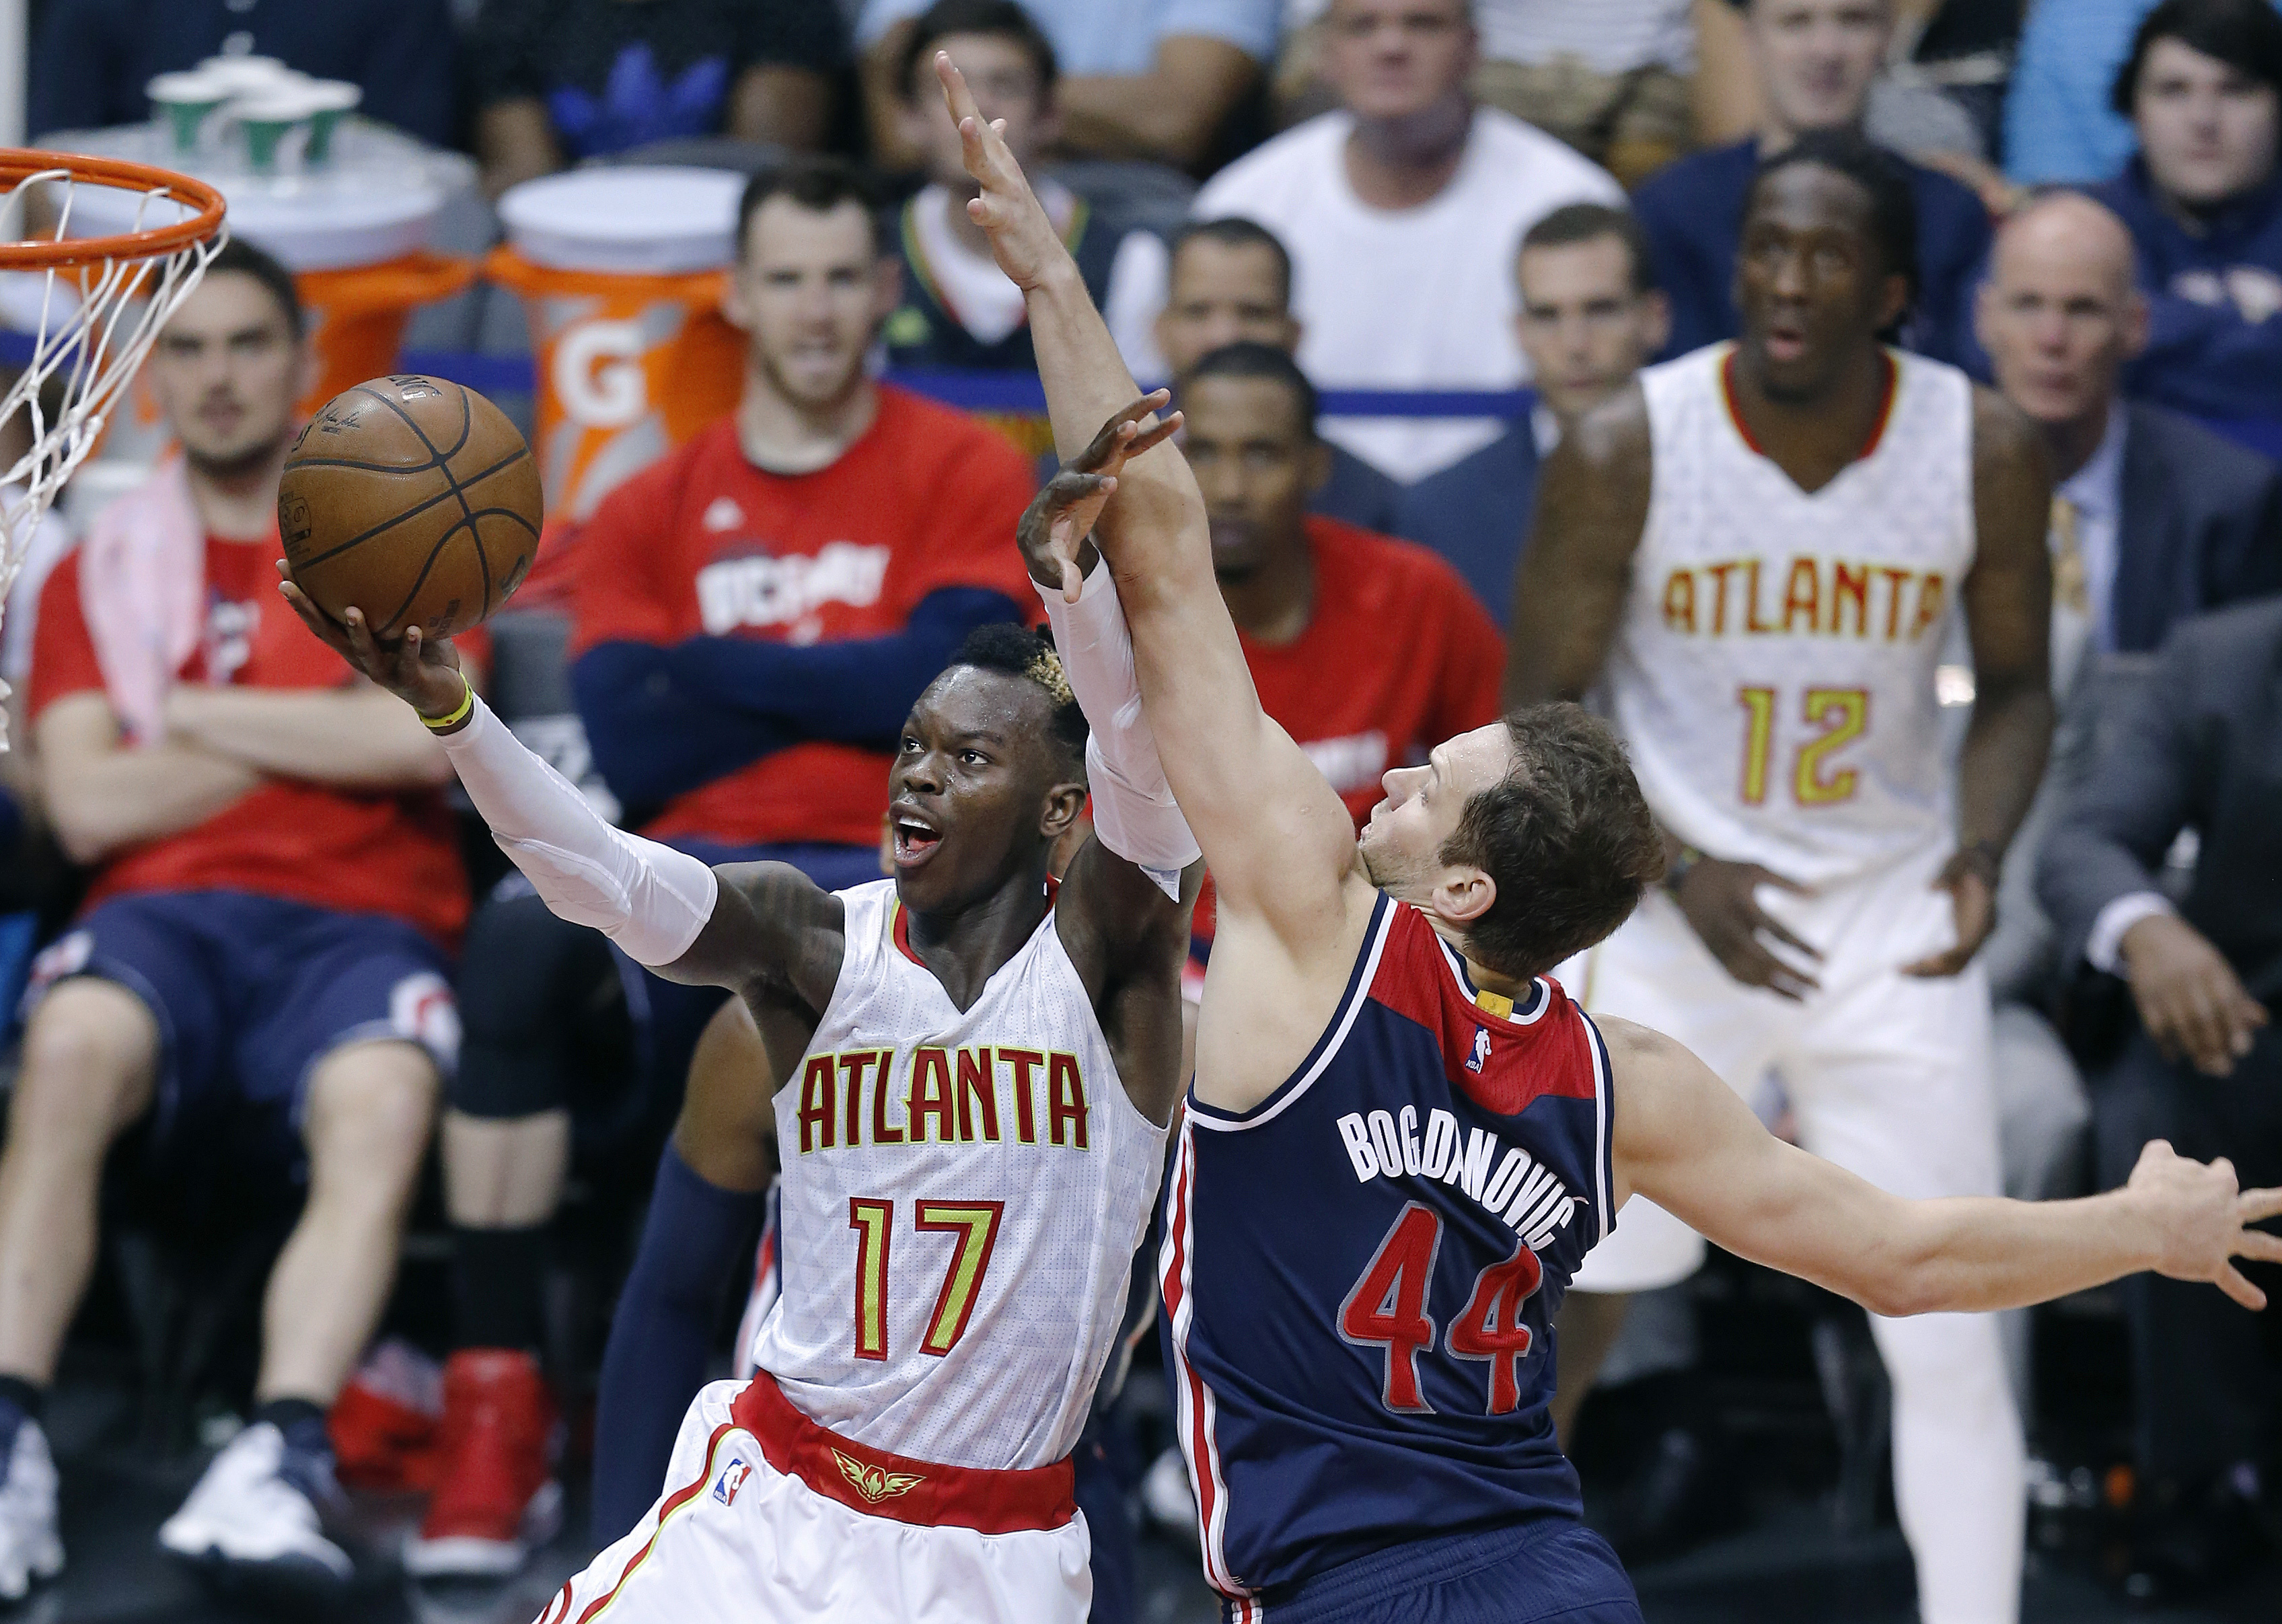 Wizards_hawks_basketball_11307.jpg-f66ca